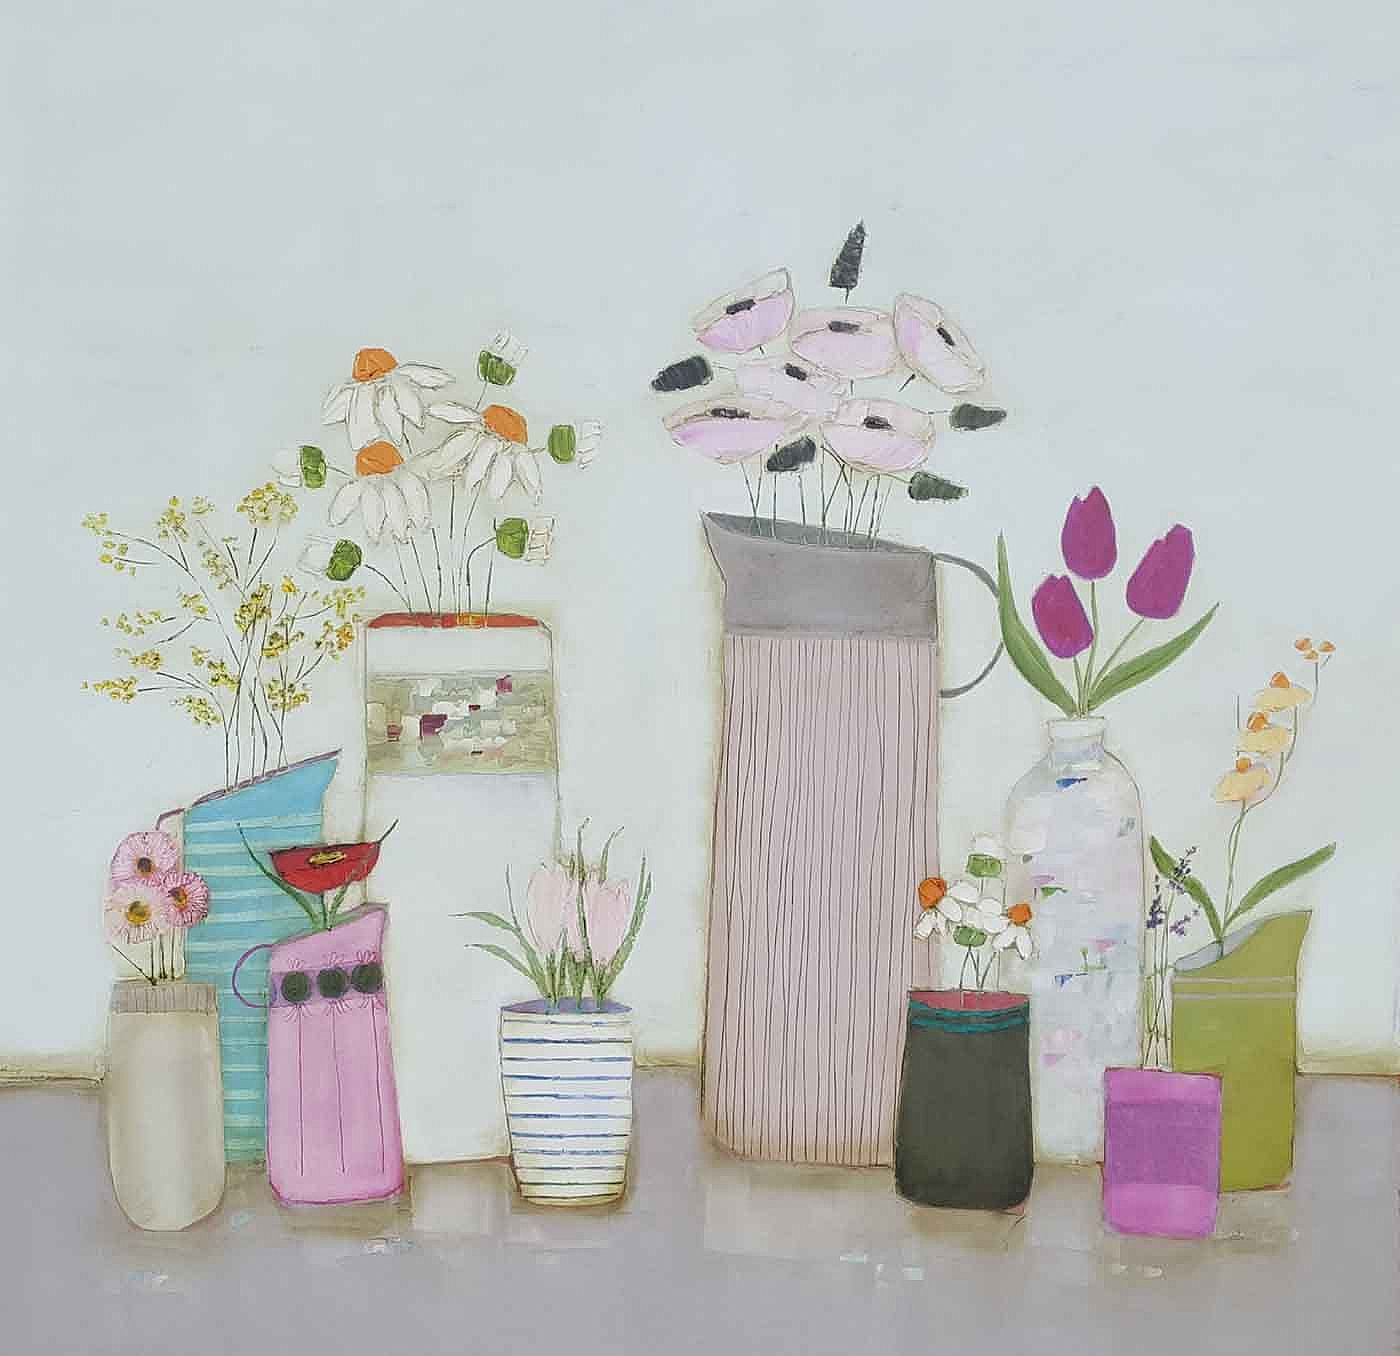 Eithne  Roberts - Pinks and daisy shelf